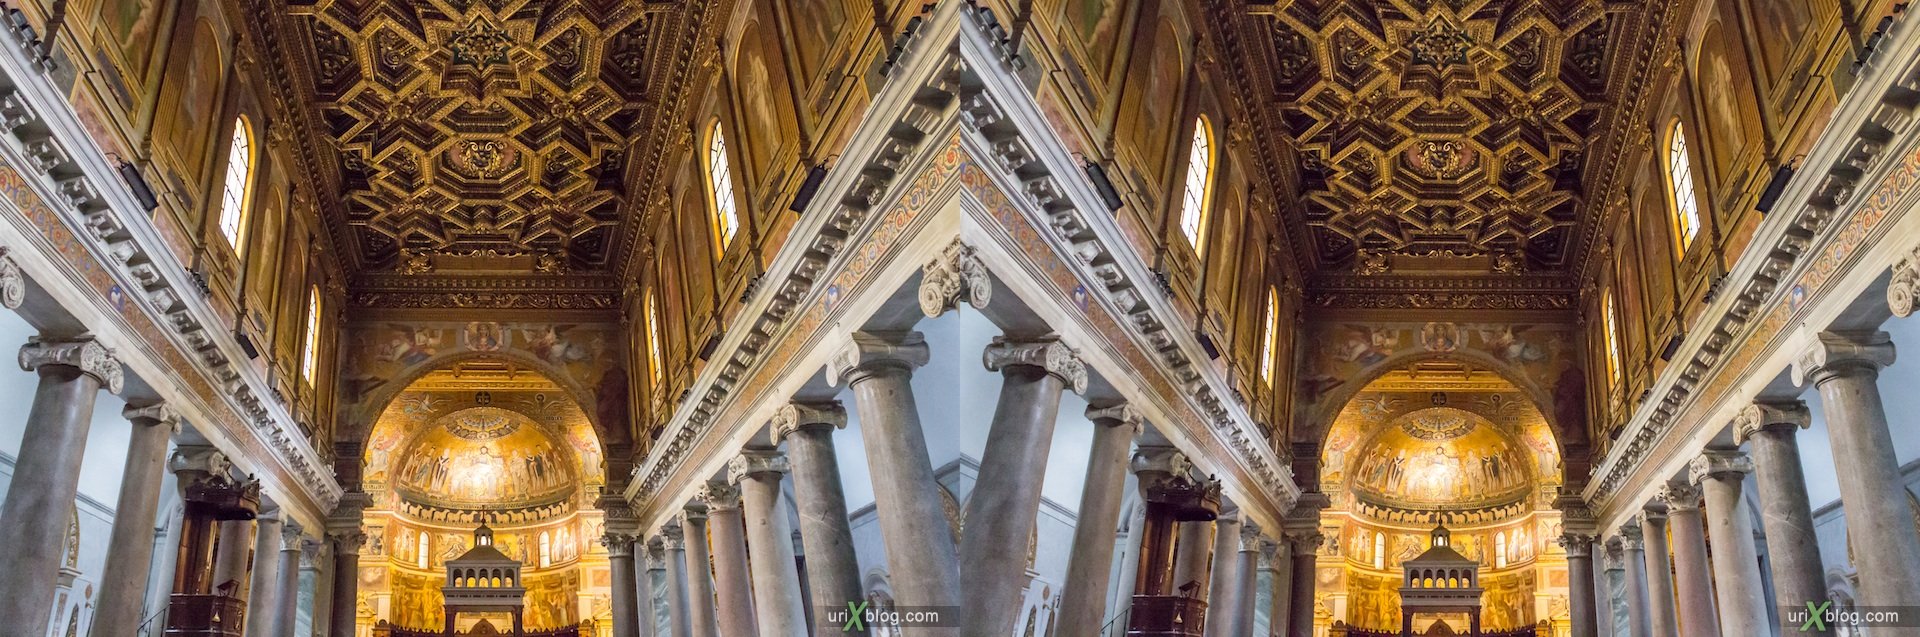 2012, Santa Maria in Trastevere church, Rome, Italy, cathedral, monastery, Christianity, Catholicism, 3D, stereo pair, cross-eyed, crossview, cross view stereo pair